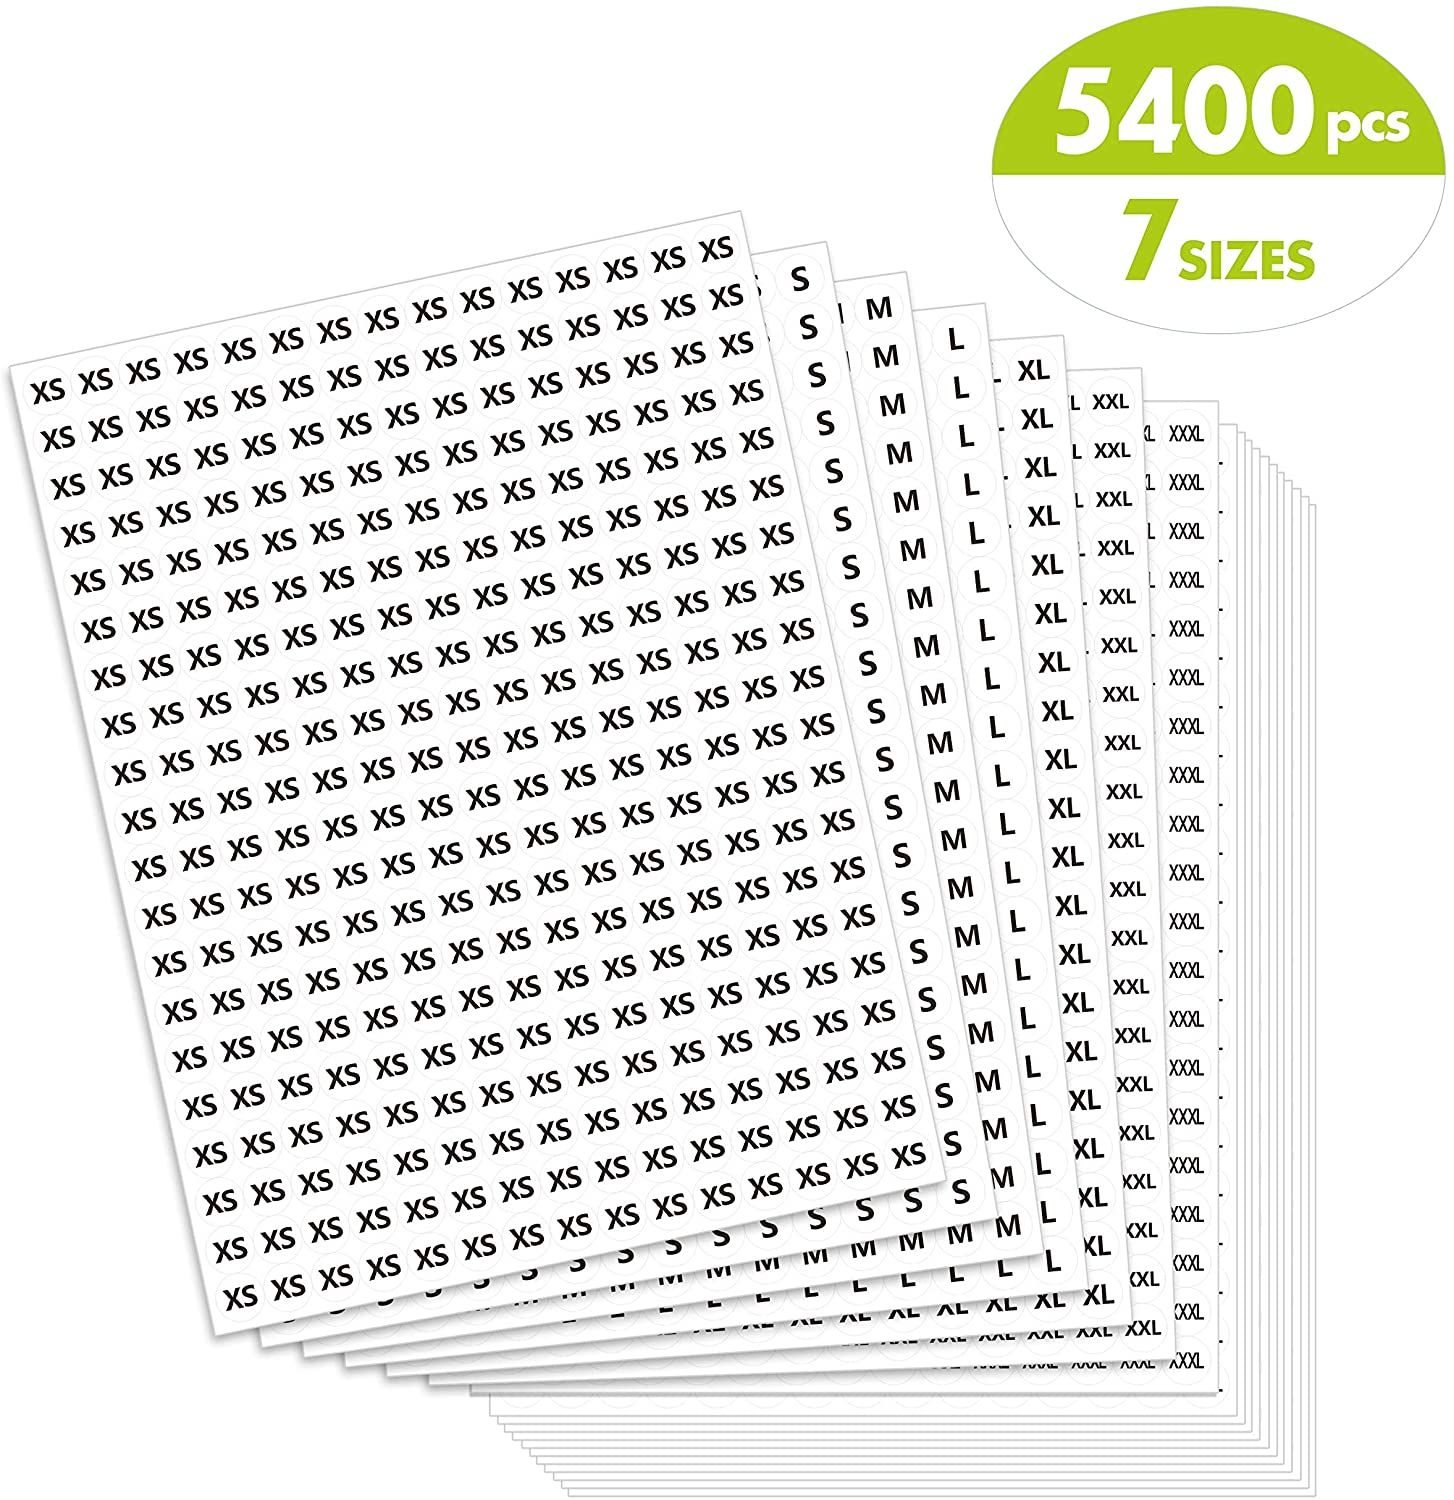 5400 PCs Clothing Size Round Sticker Labels Mega Bundle in 7 Sizes (XS, S, M, L, XL, XXL, XXXL) with Perforation Line, Perfect Proportion, 1/2